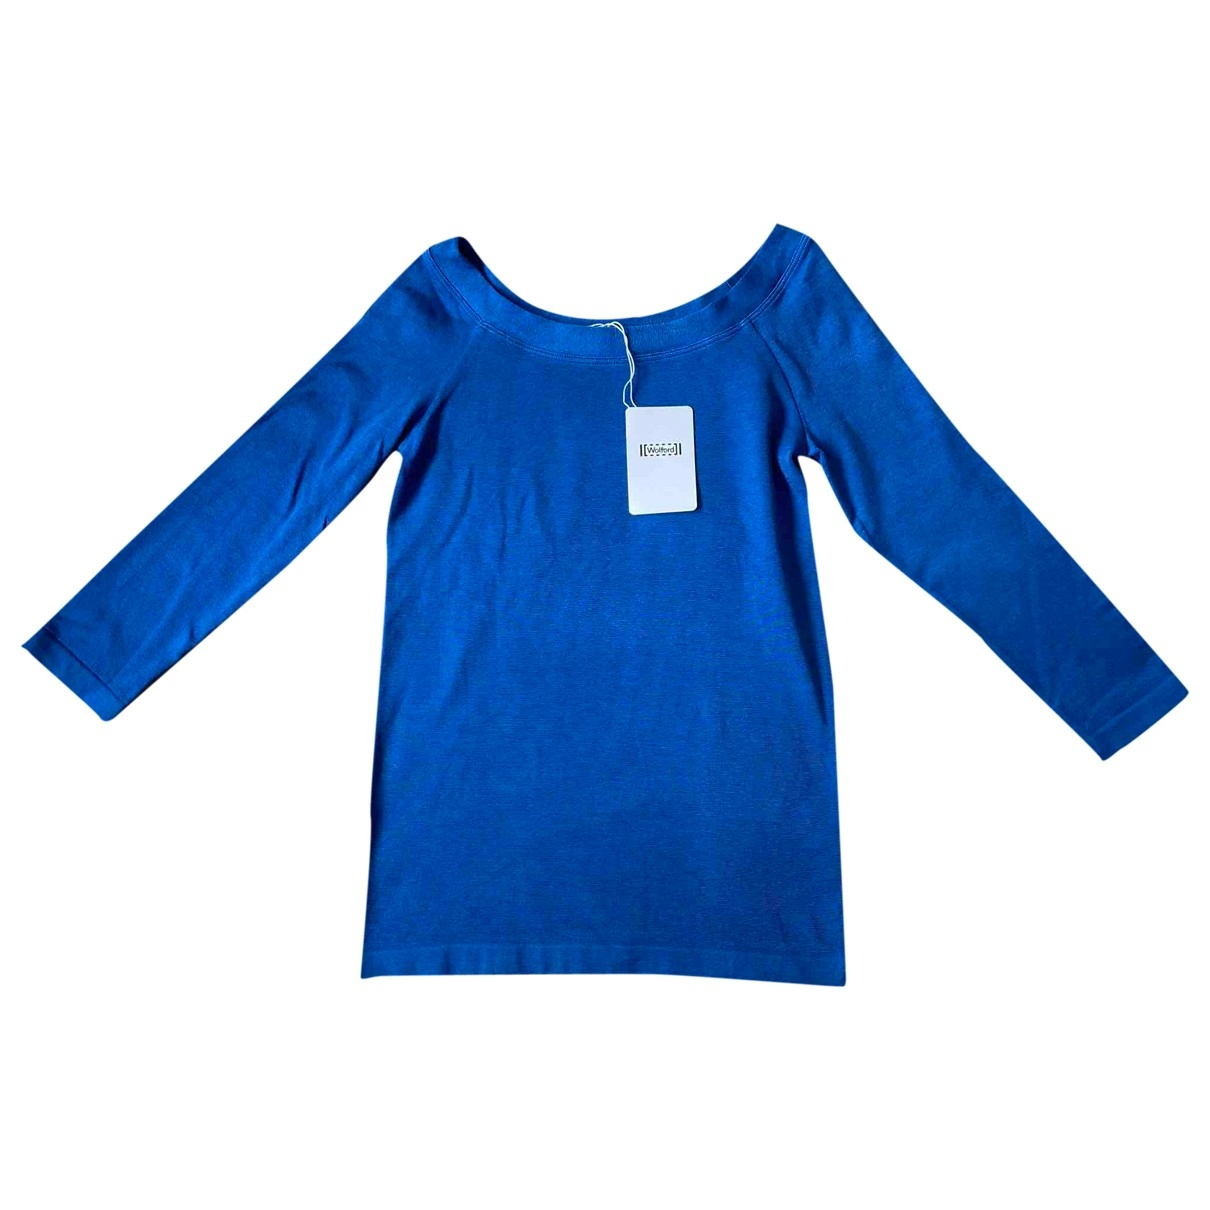 Wolford \N Blue  top for Women XS International